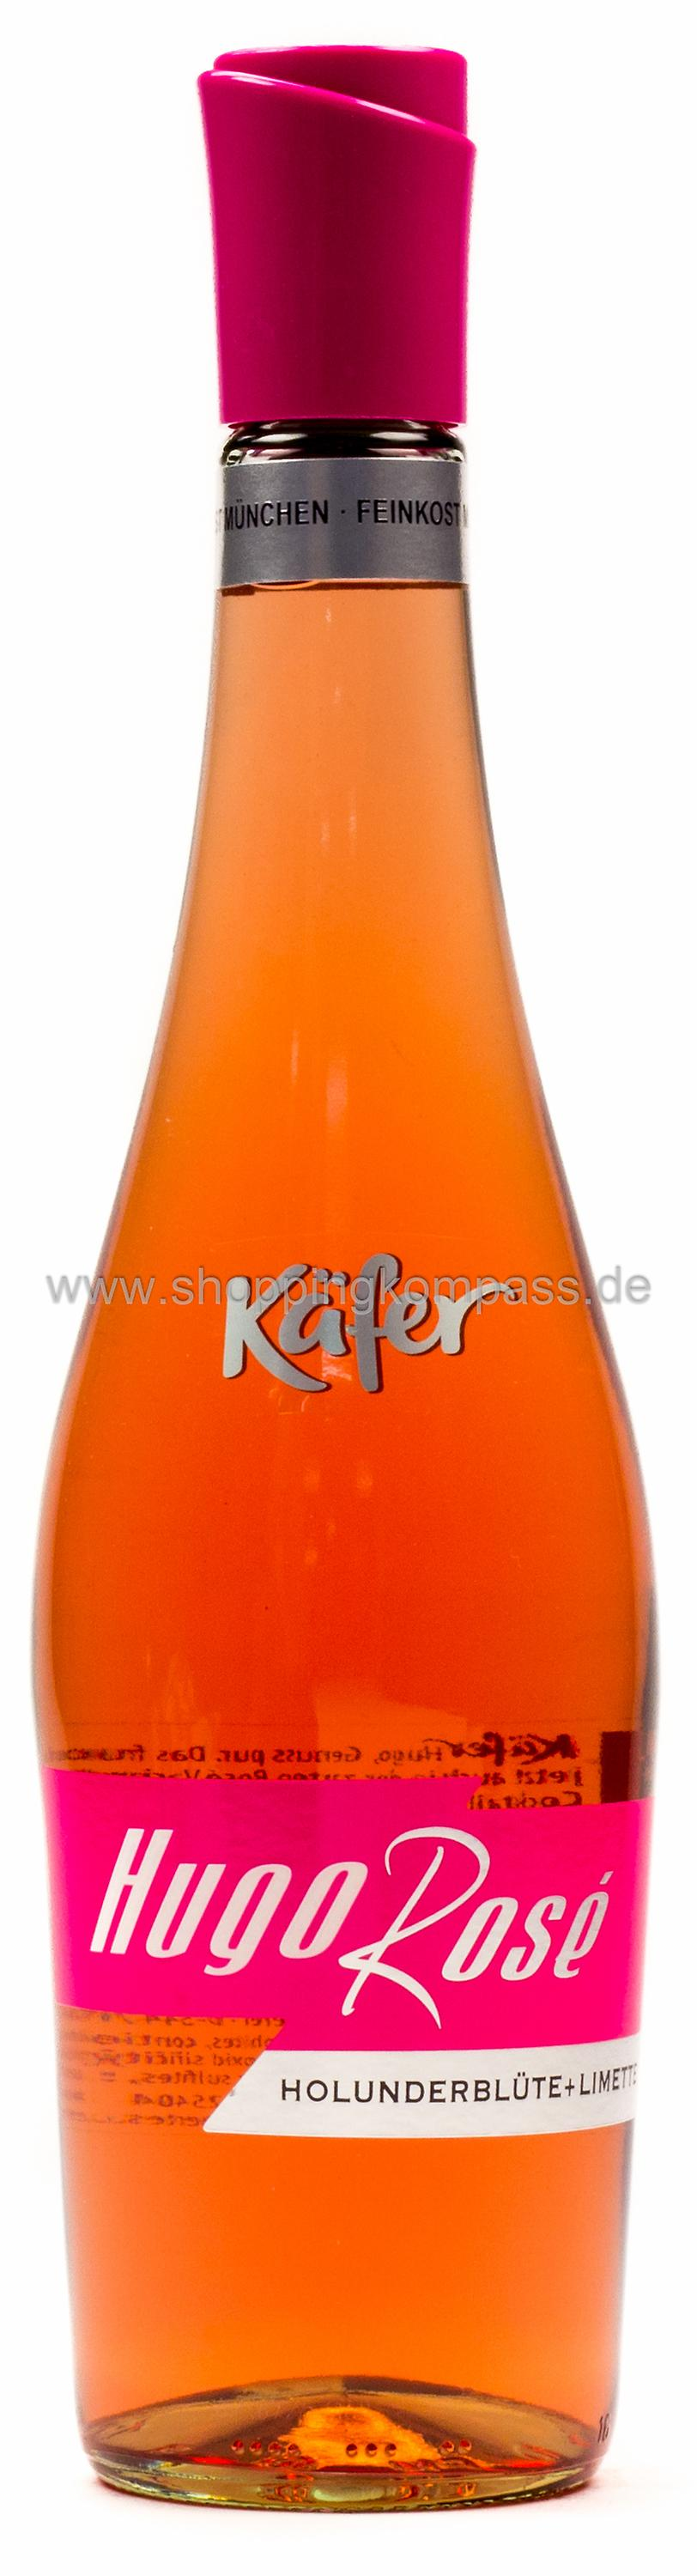 Käfer Hugo Rose 0,75 l